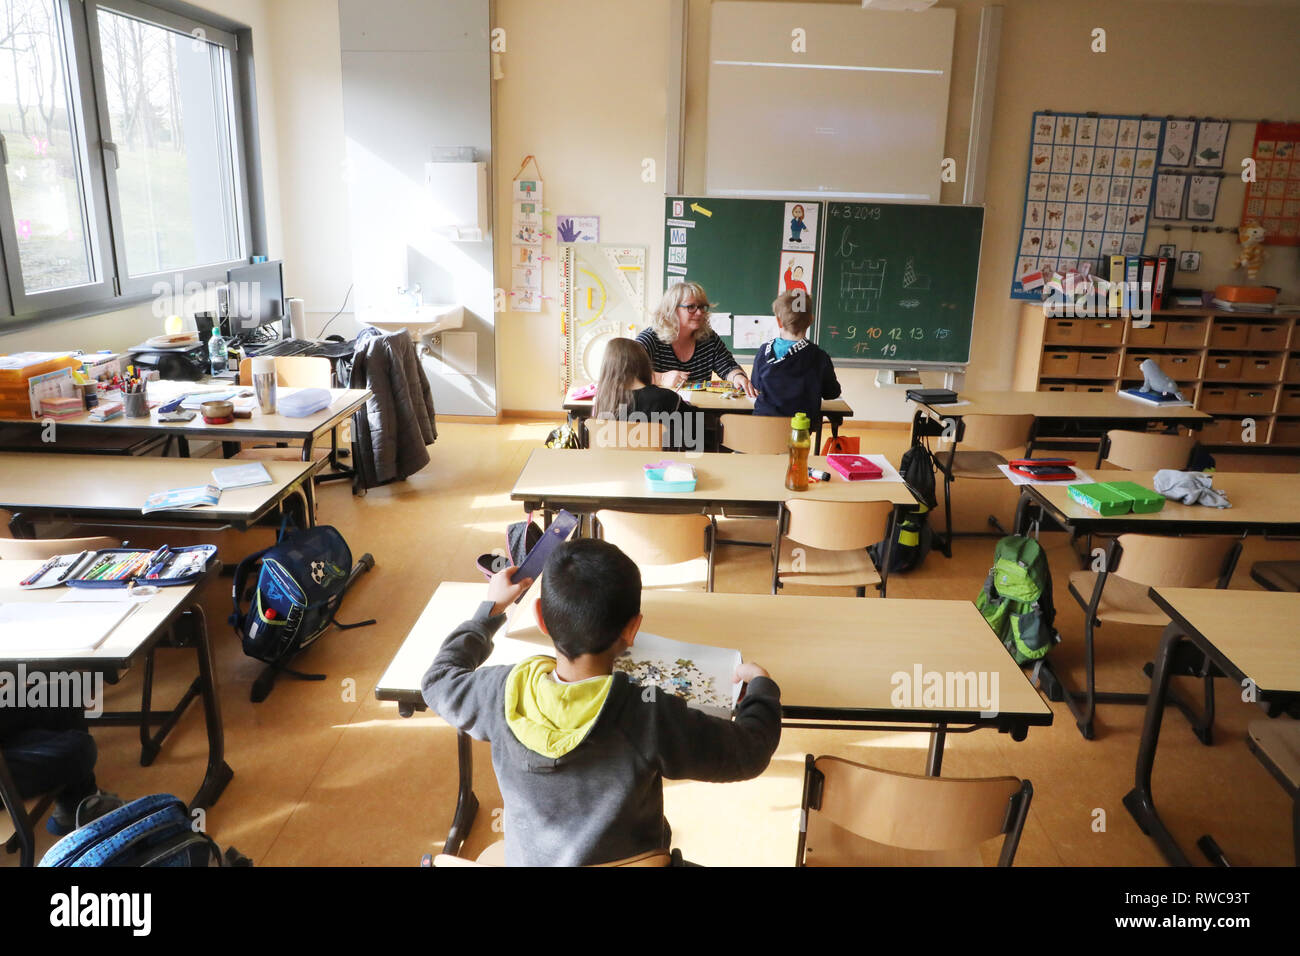 Gera, Germany. 06th Mar, 2019. Primary school teacher Ulrike Gerth looks after pupils of a first class in the Erich Kästner Primary School. Due to an acute shortage of staff, the primary school in Gera does not offer any lessons for one week. Credit: Bodo Schackow/dpa-Zentralbild/dpa/Alamy Live News - Stock Image